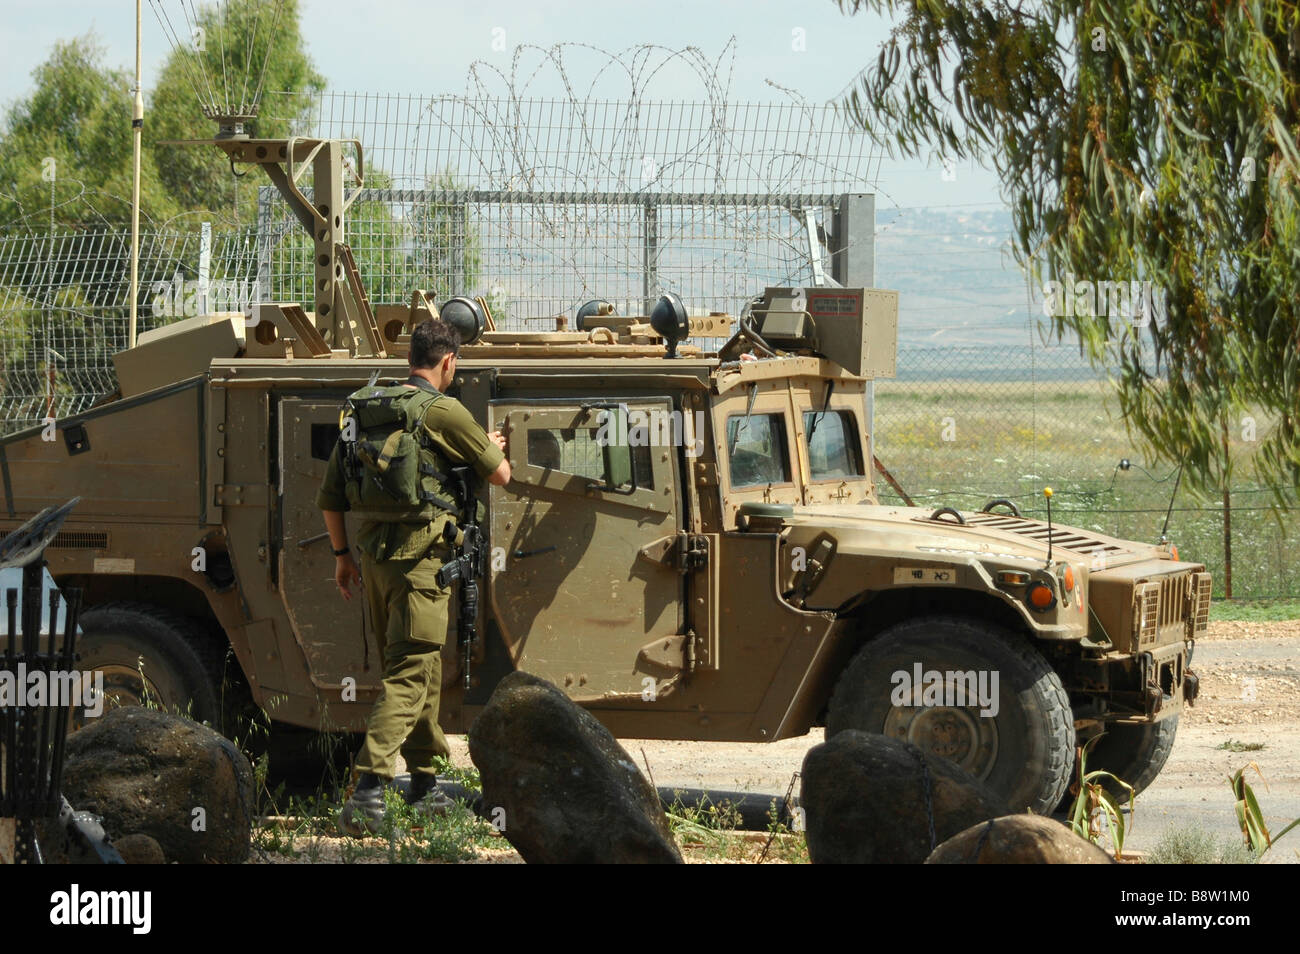 Israel Upper Galilee Metula An Israeli Border Patrol Jeep and soldiers on the Lebanese border Stock Photo